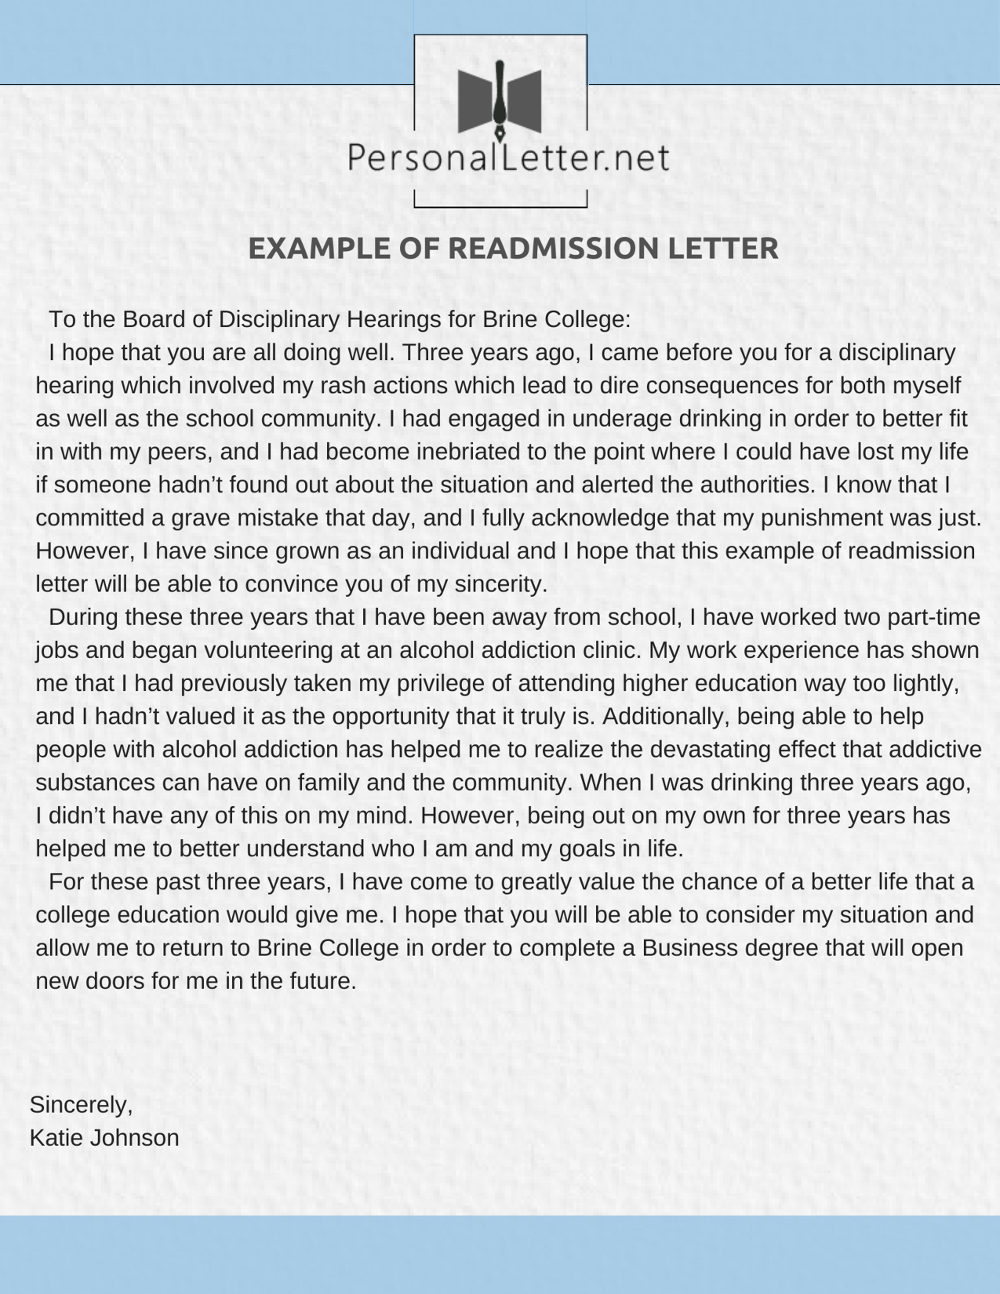 Expert Readmission Letter Writing Services   Personal Letter